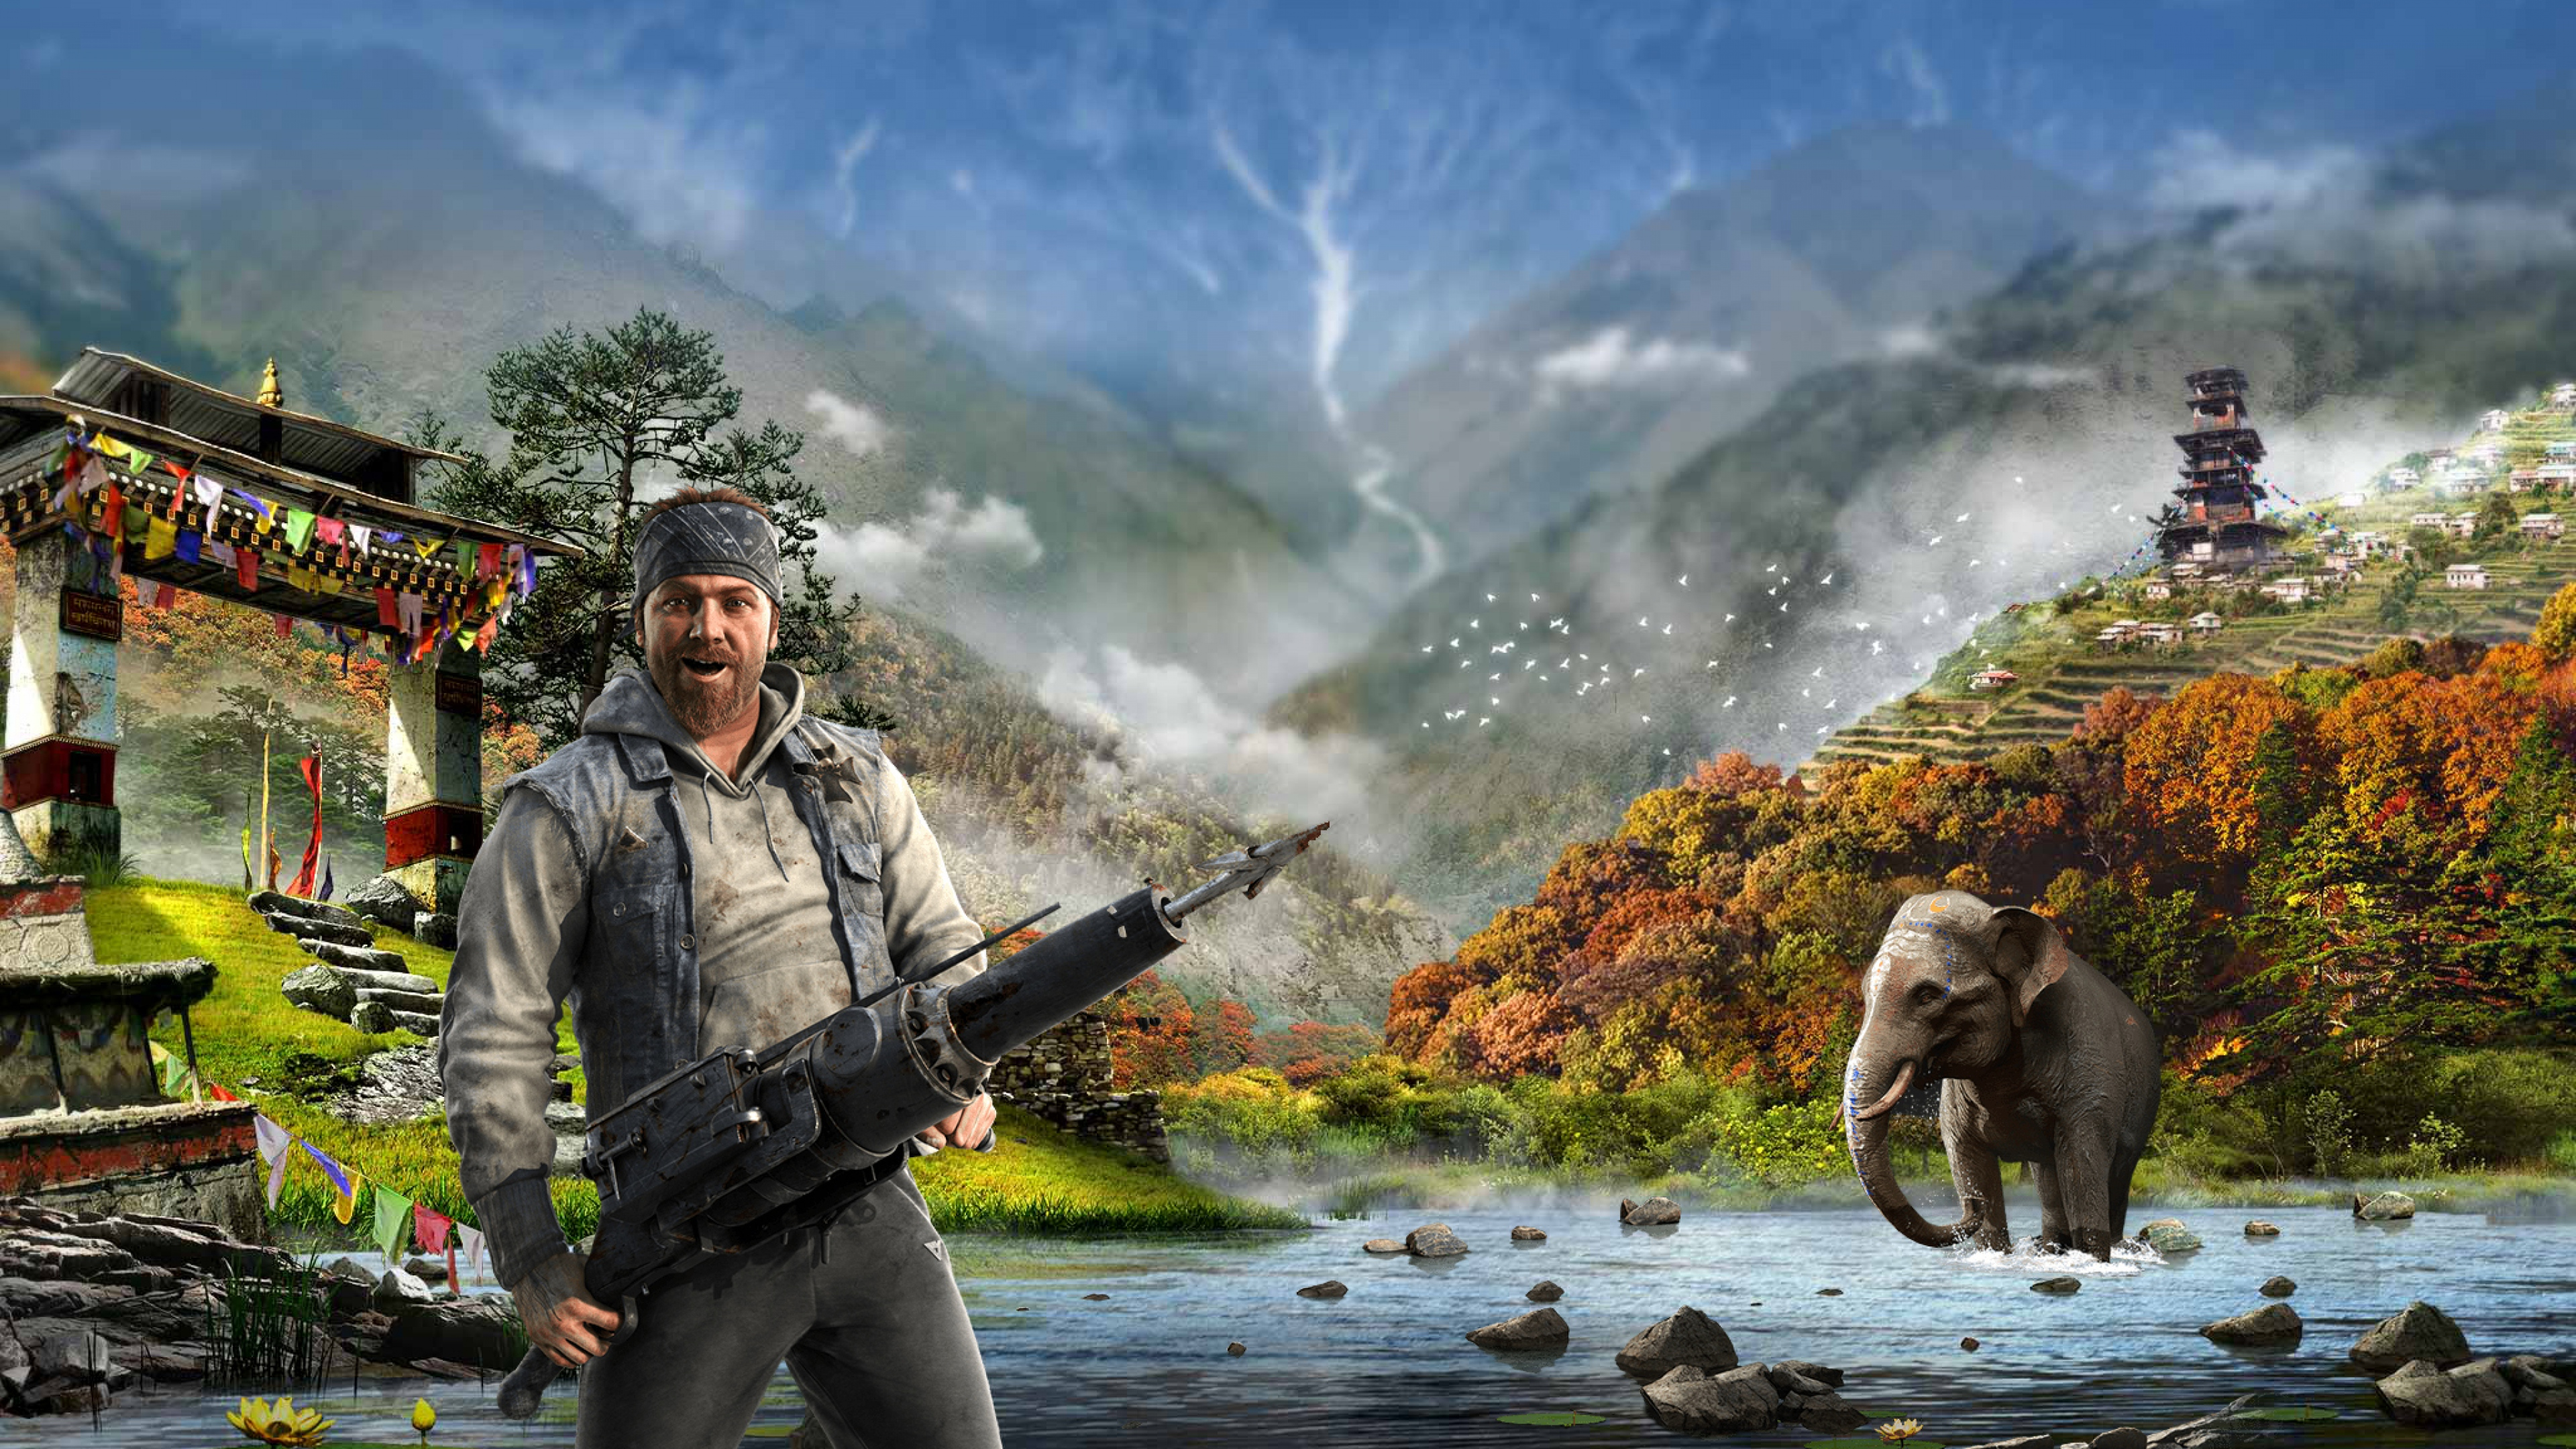 Free Download Far Cry 4 Ubisoft Harpoon Kirata Wallpaper